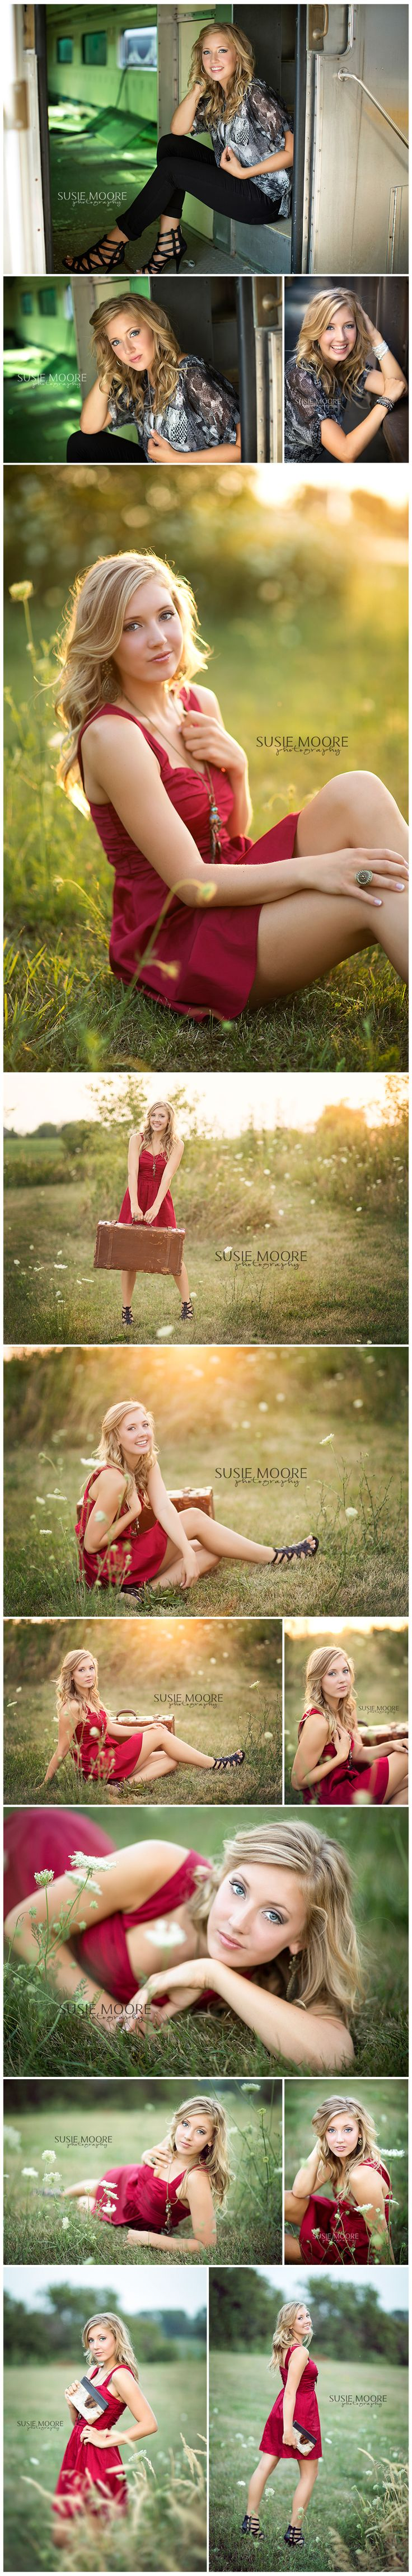 Pin By Michael Gregory On Sweet Thang Girl Senior Pictures Senior Girl Photography Senior Photography